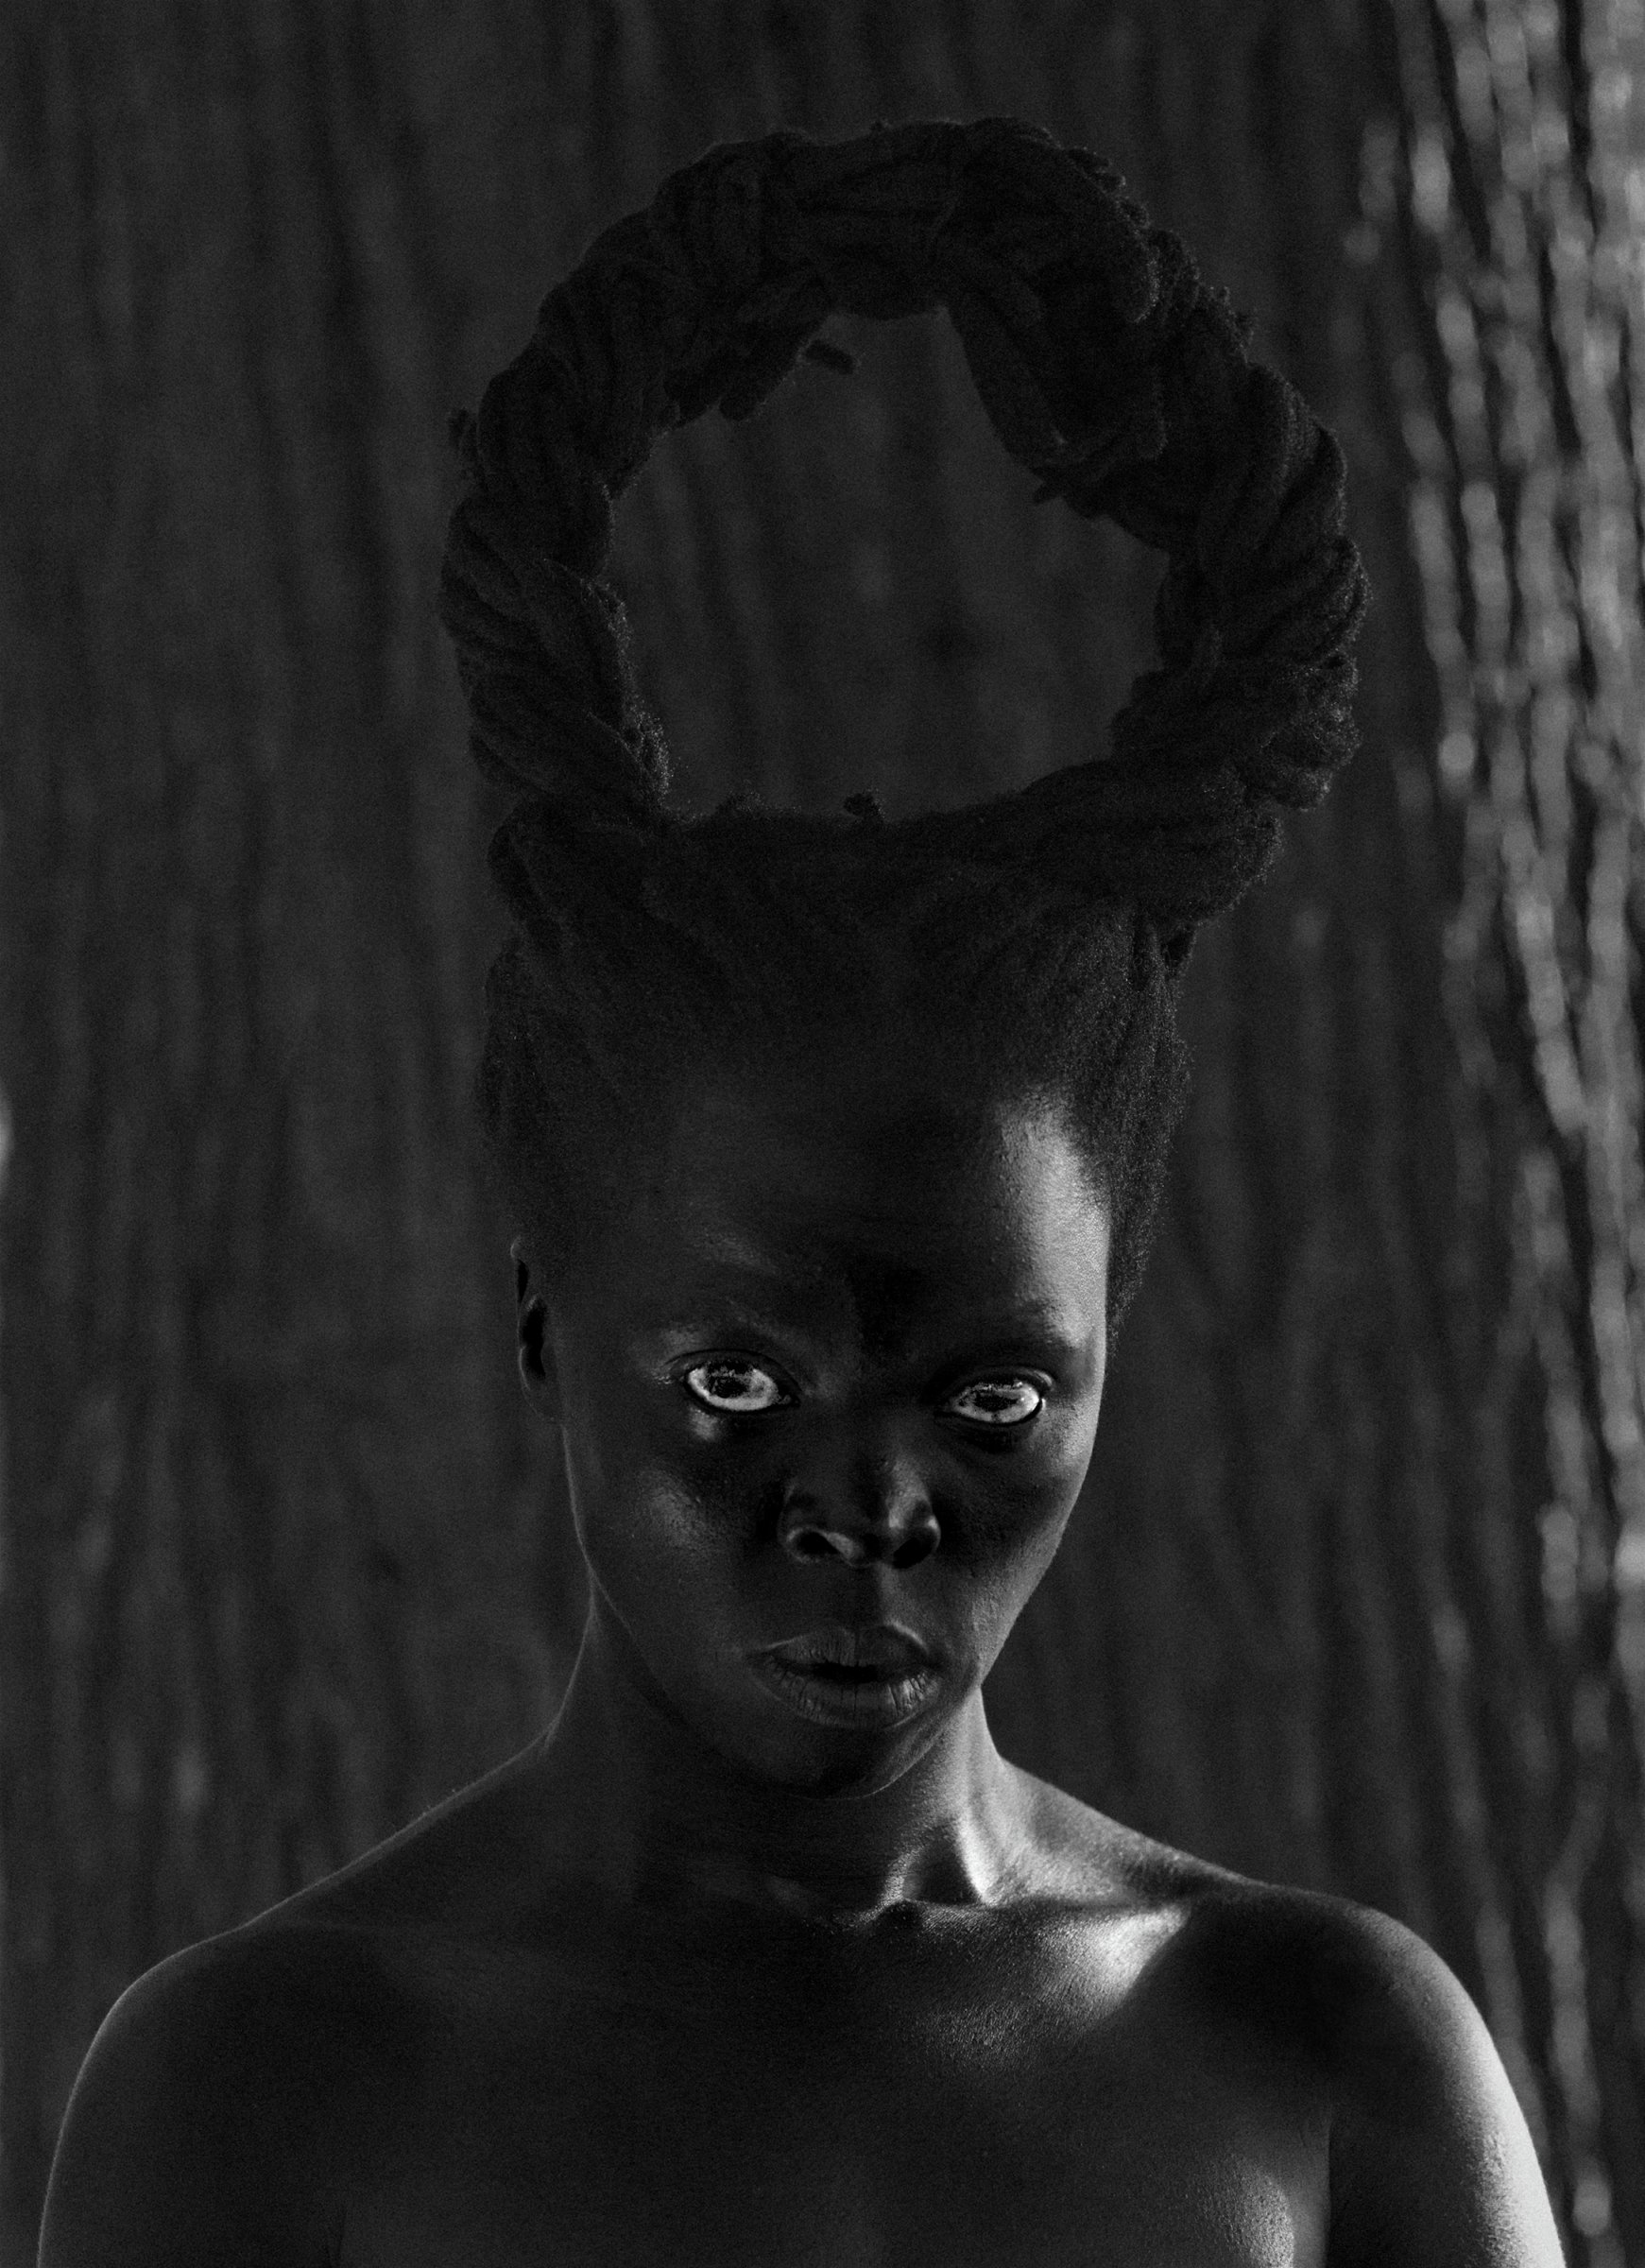 Zanele Muholi (South African, born 1972), Zibuyile I (Syracuse ), 2015, gelatin silver print, 25 5/8 x 17 inches, purchase with funds from the Donald and Marilyn Keough Family and the H. B. and Doris Massey Charitable Trust. 2017.300